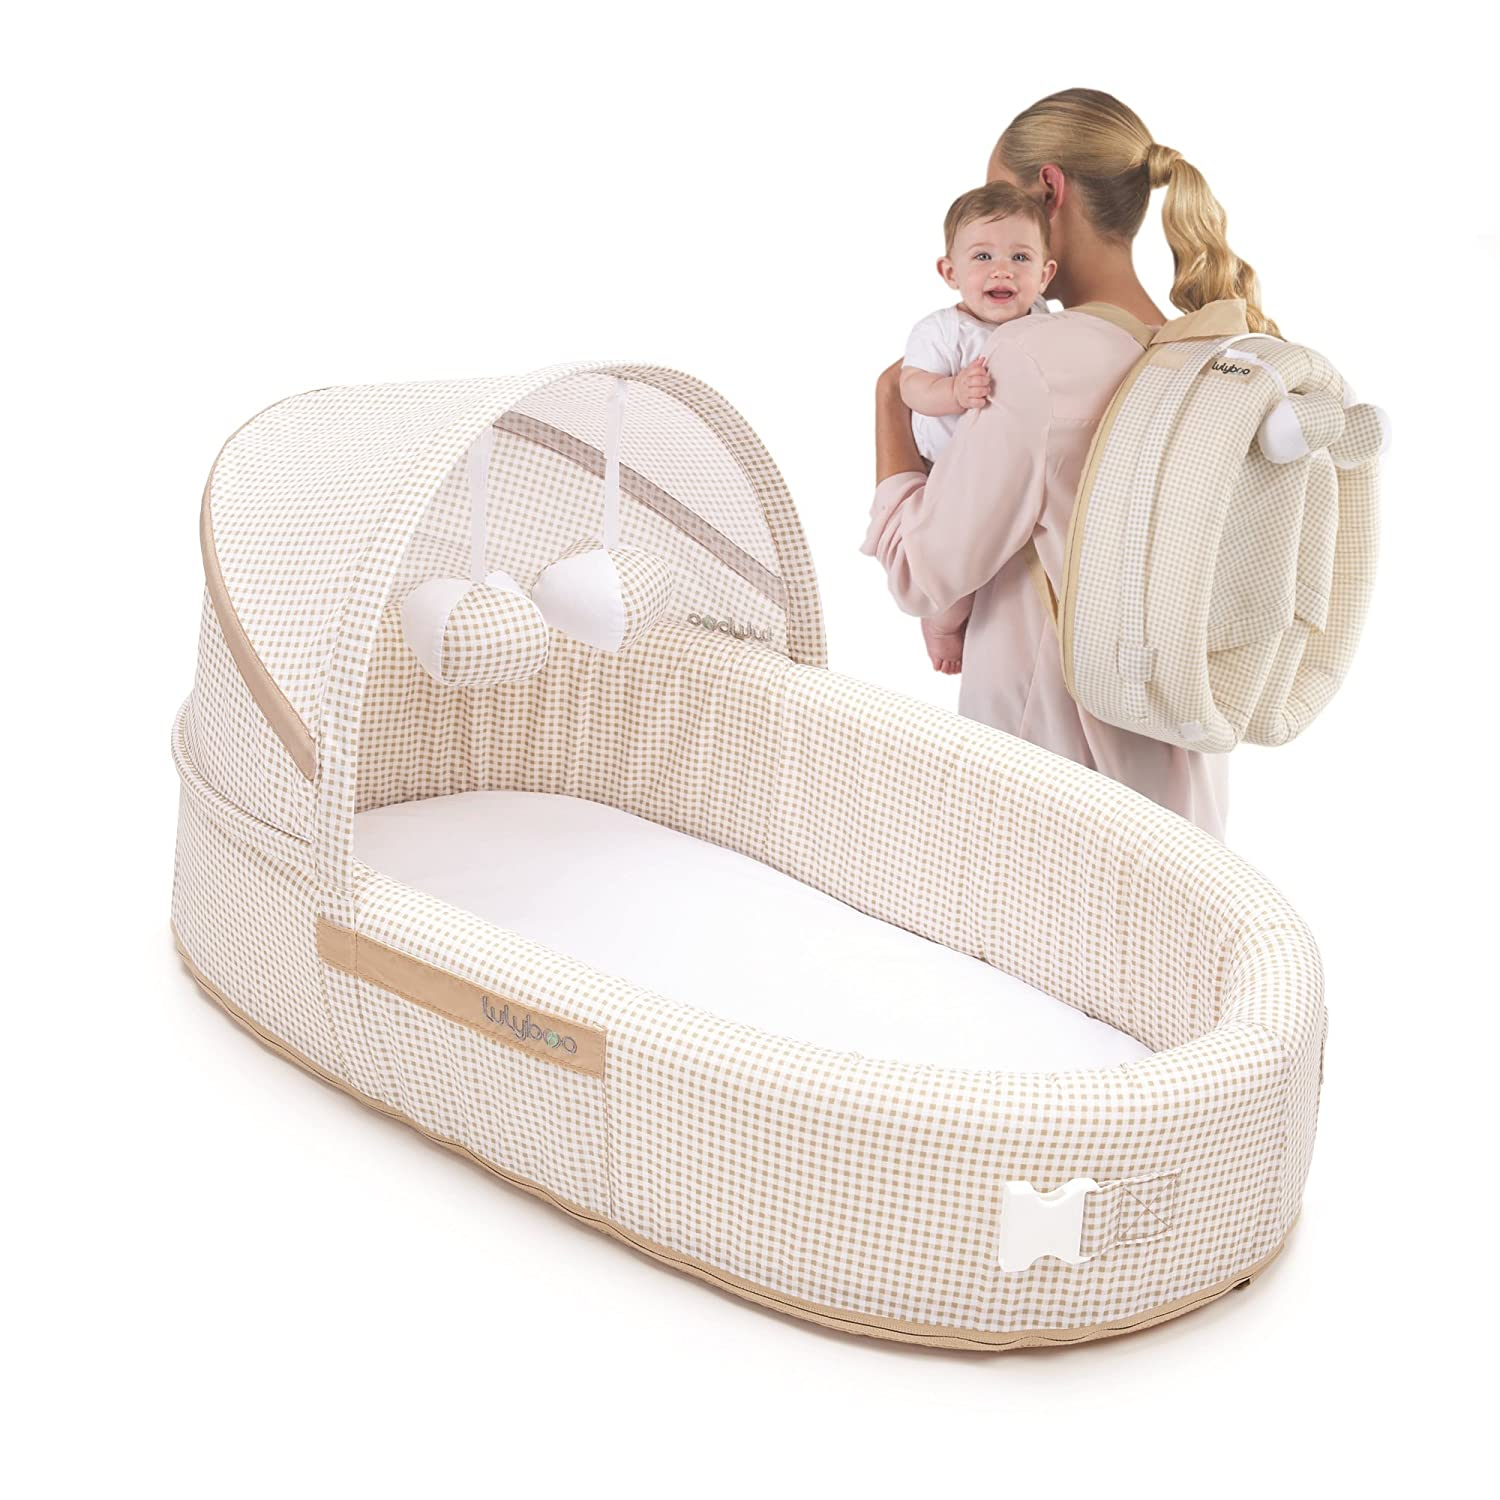 LulyBoo Baby Lounge To Go - Portable Infant Bed Folds Into Backpack - With Activity Bar And Rattle Toys (Beige) BLF N 001